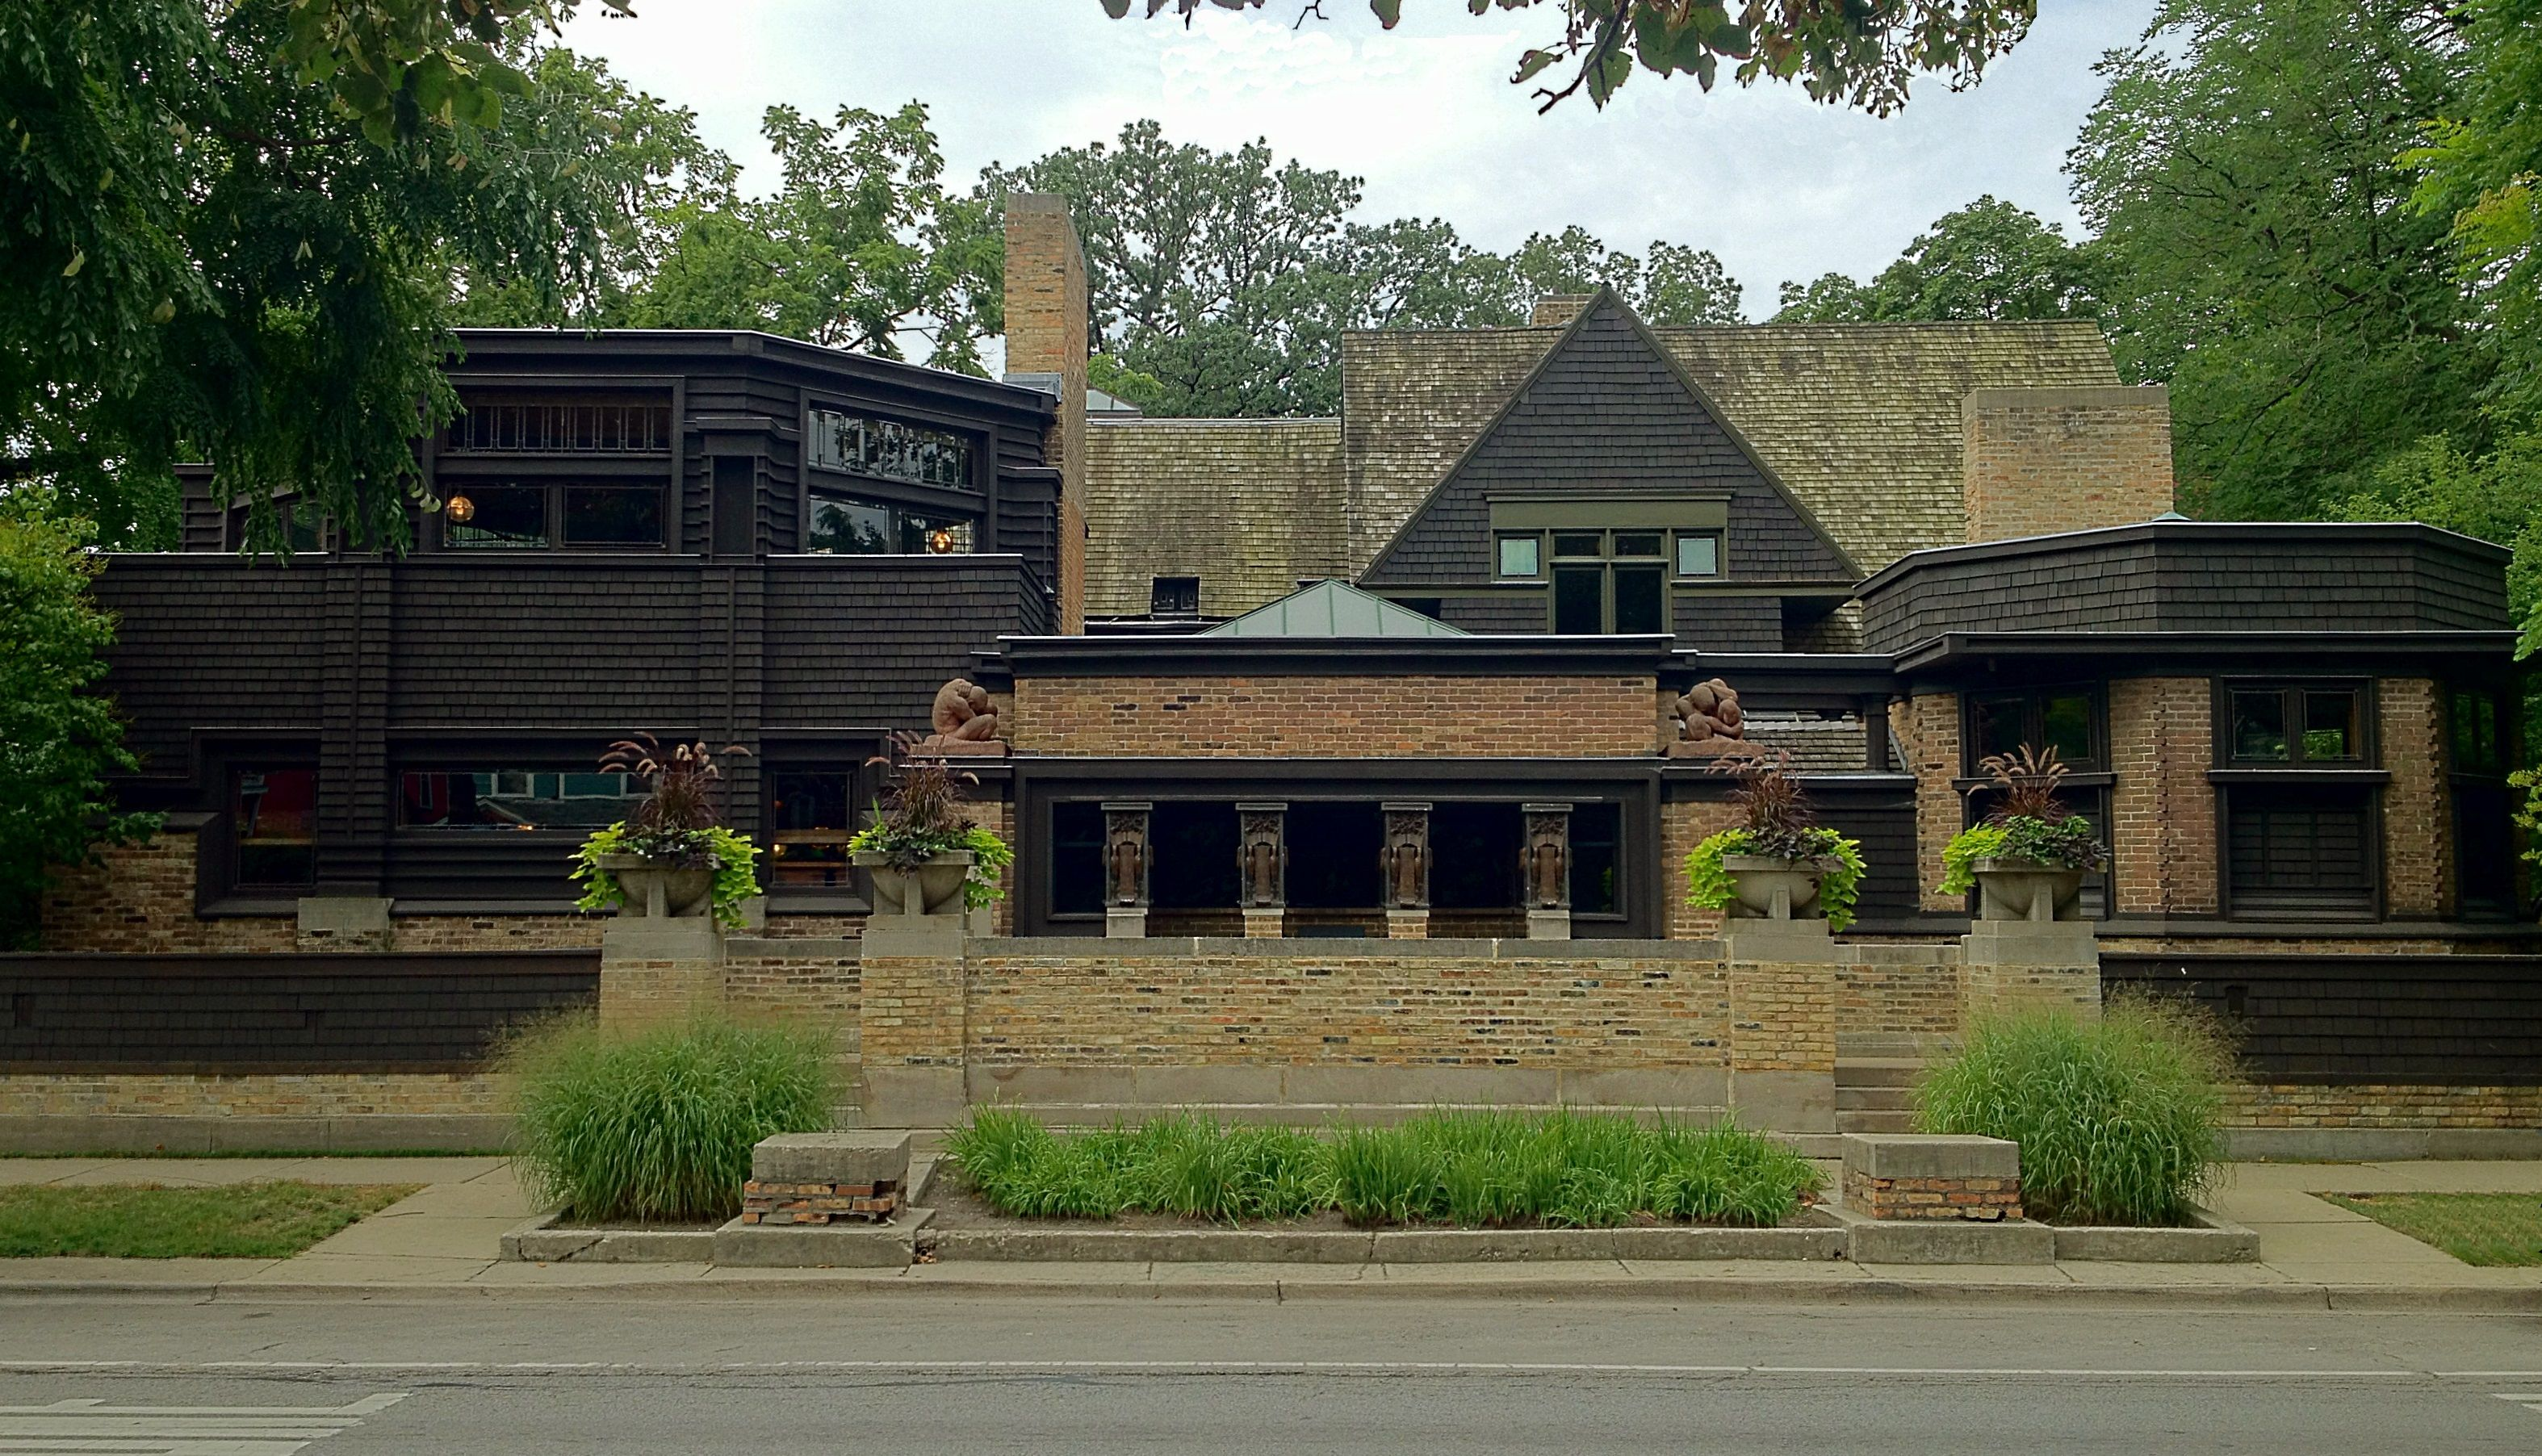 Frank lloyd wright home studio 1889 1898 951 chicago for Frank lloyd wright piani per la casa